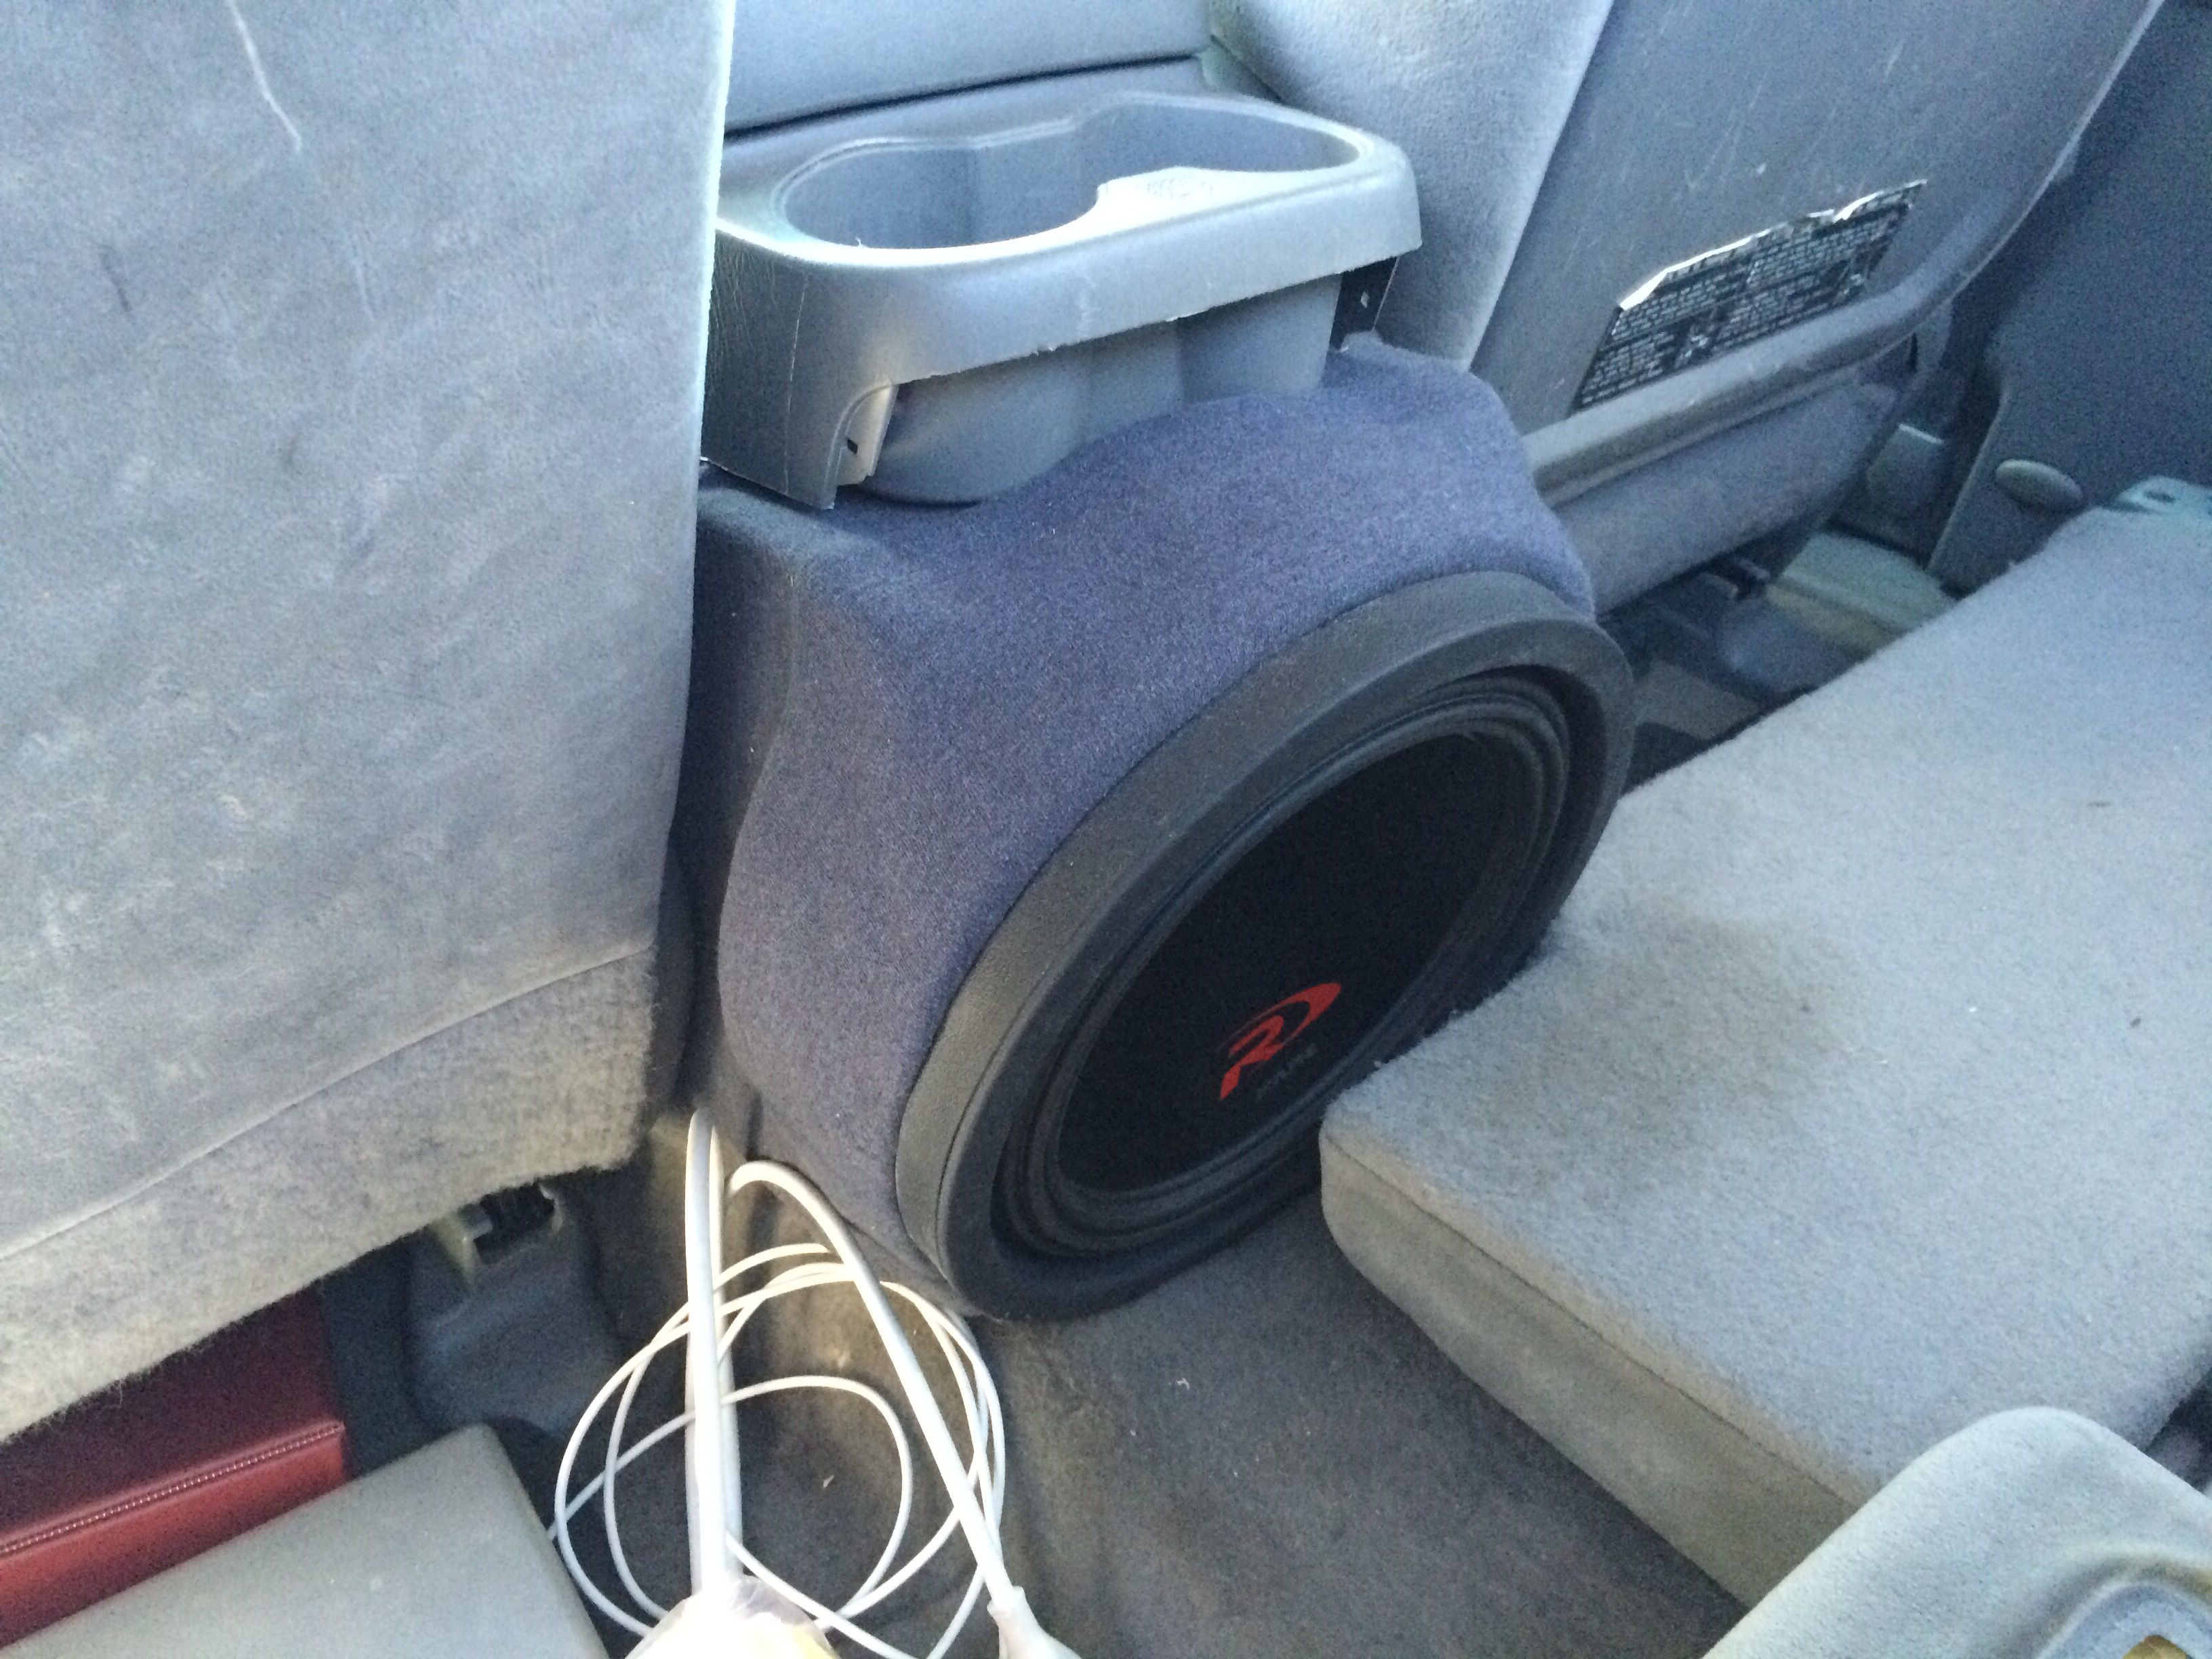 Subwoofer Box I Made To Fit The Center Console Of A 2nd Gen Toyota Tacoma Car Audio Fabrication Truck Audio Car Console